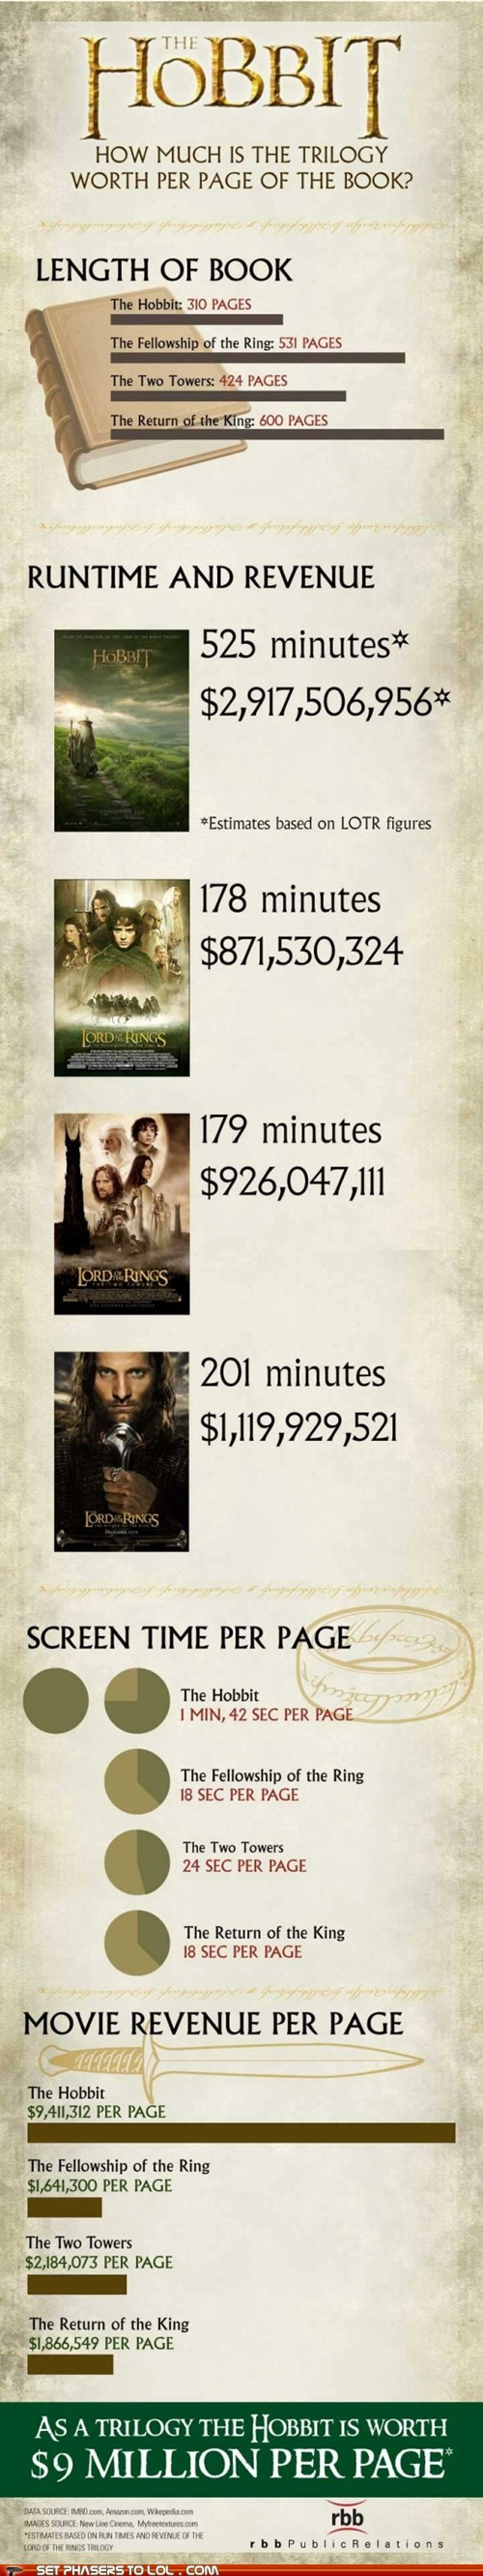 box office infographic Lord of The Ring Lord of the Rings money movies peter jackson worth